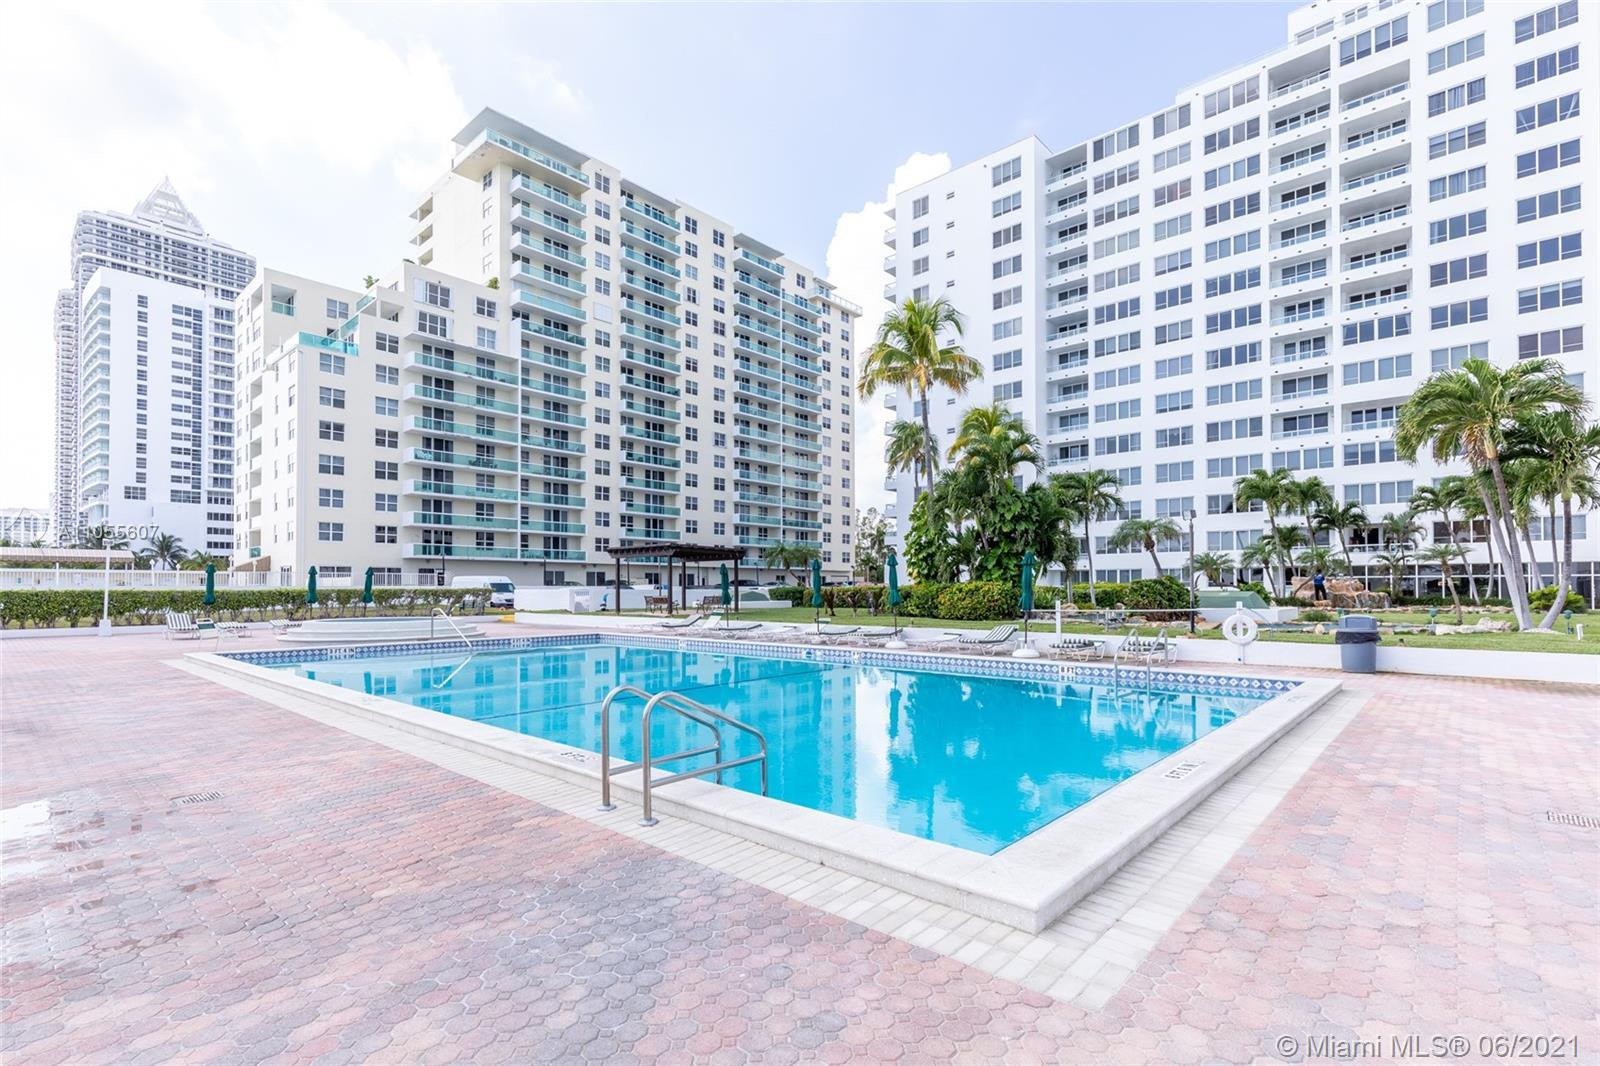 Carriage Club - Condos for sale